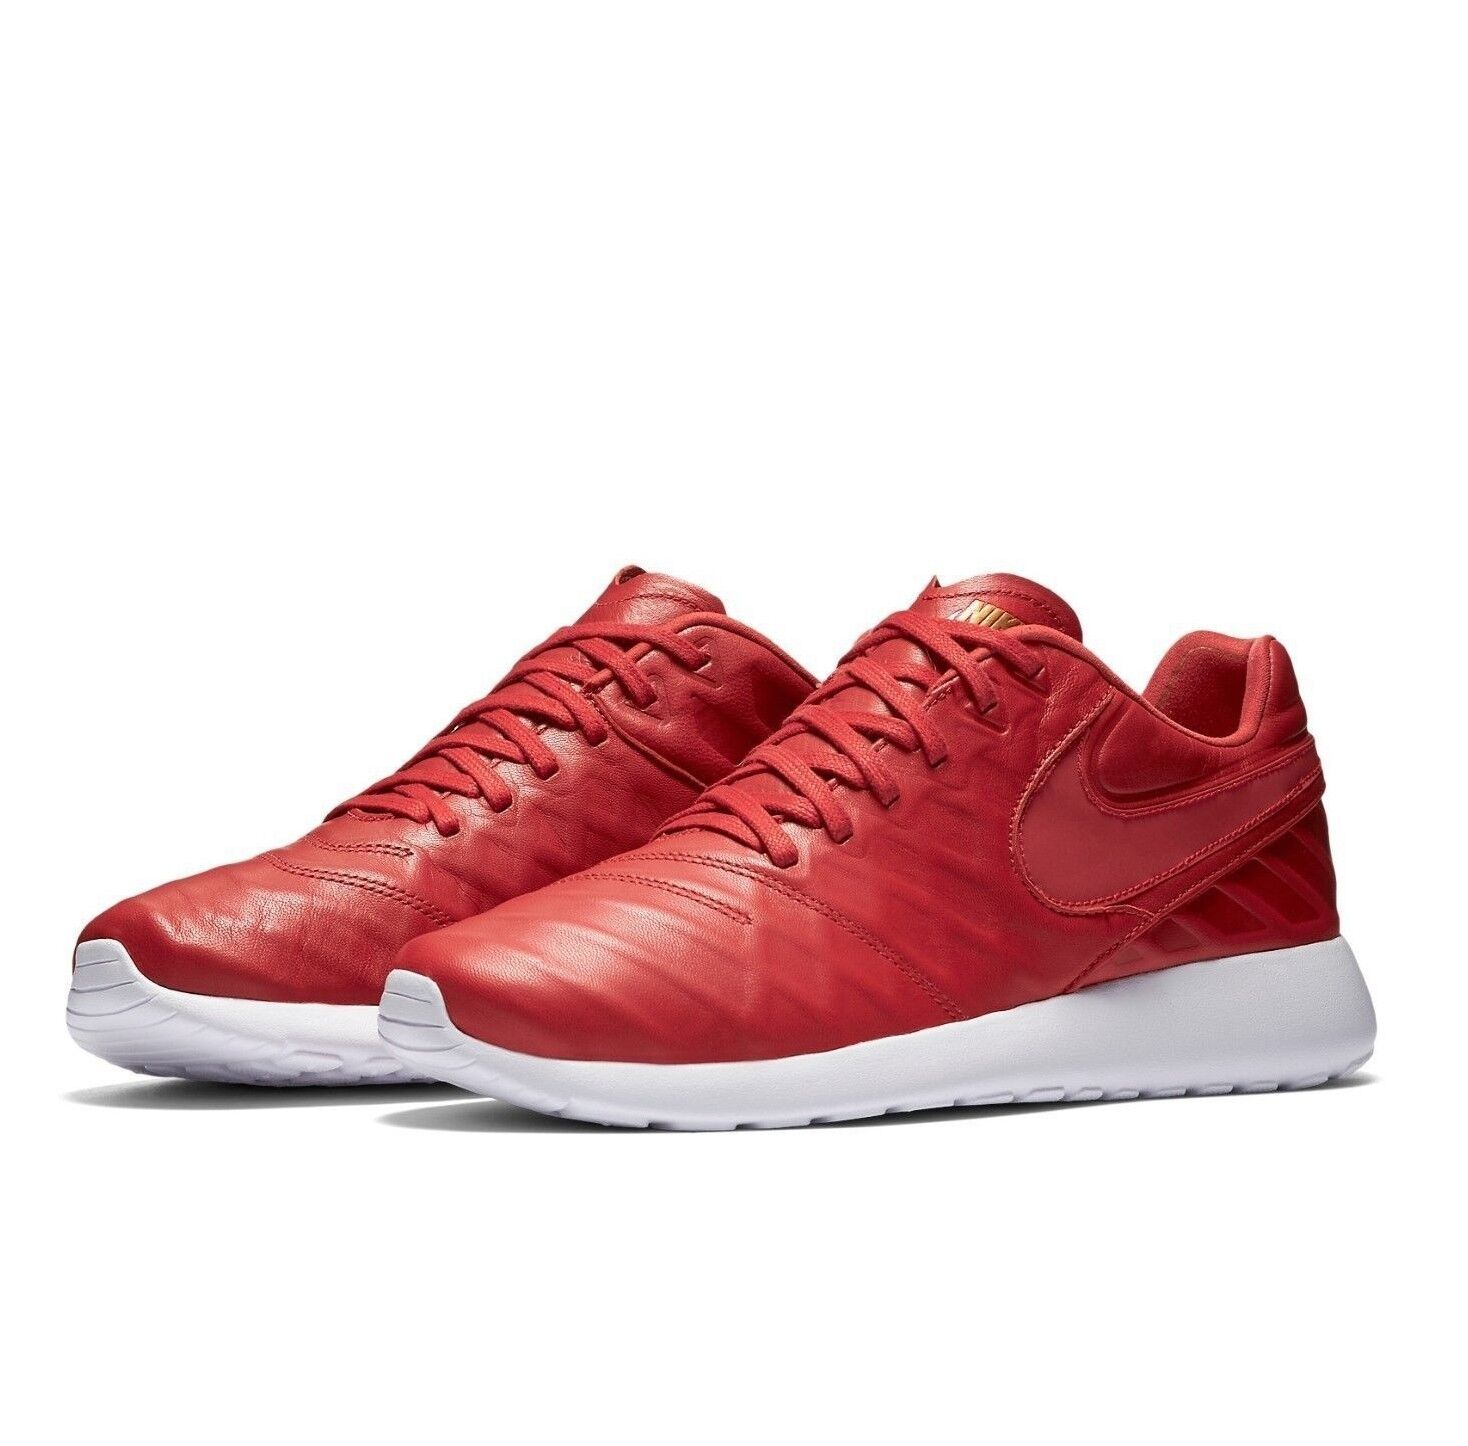 Nike Roshe Tiempo VI QS Leather shoes University Red